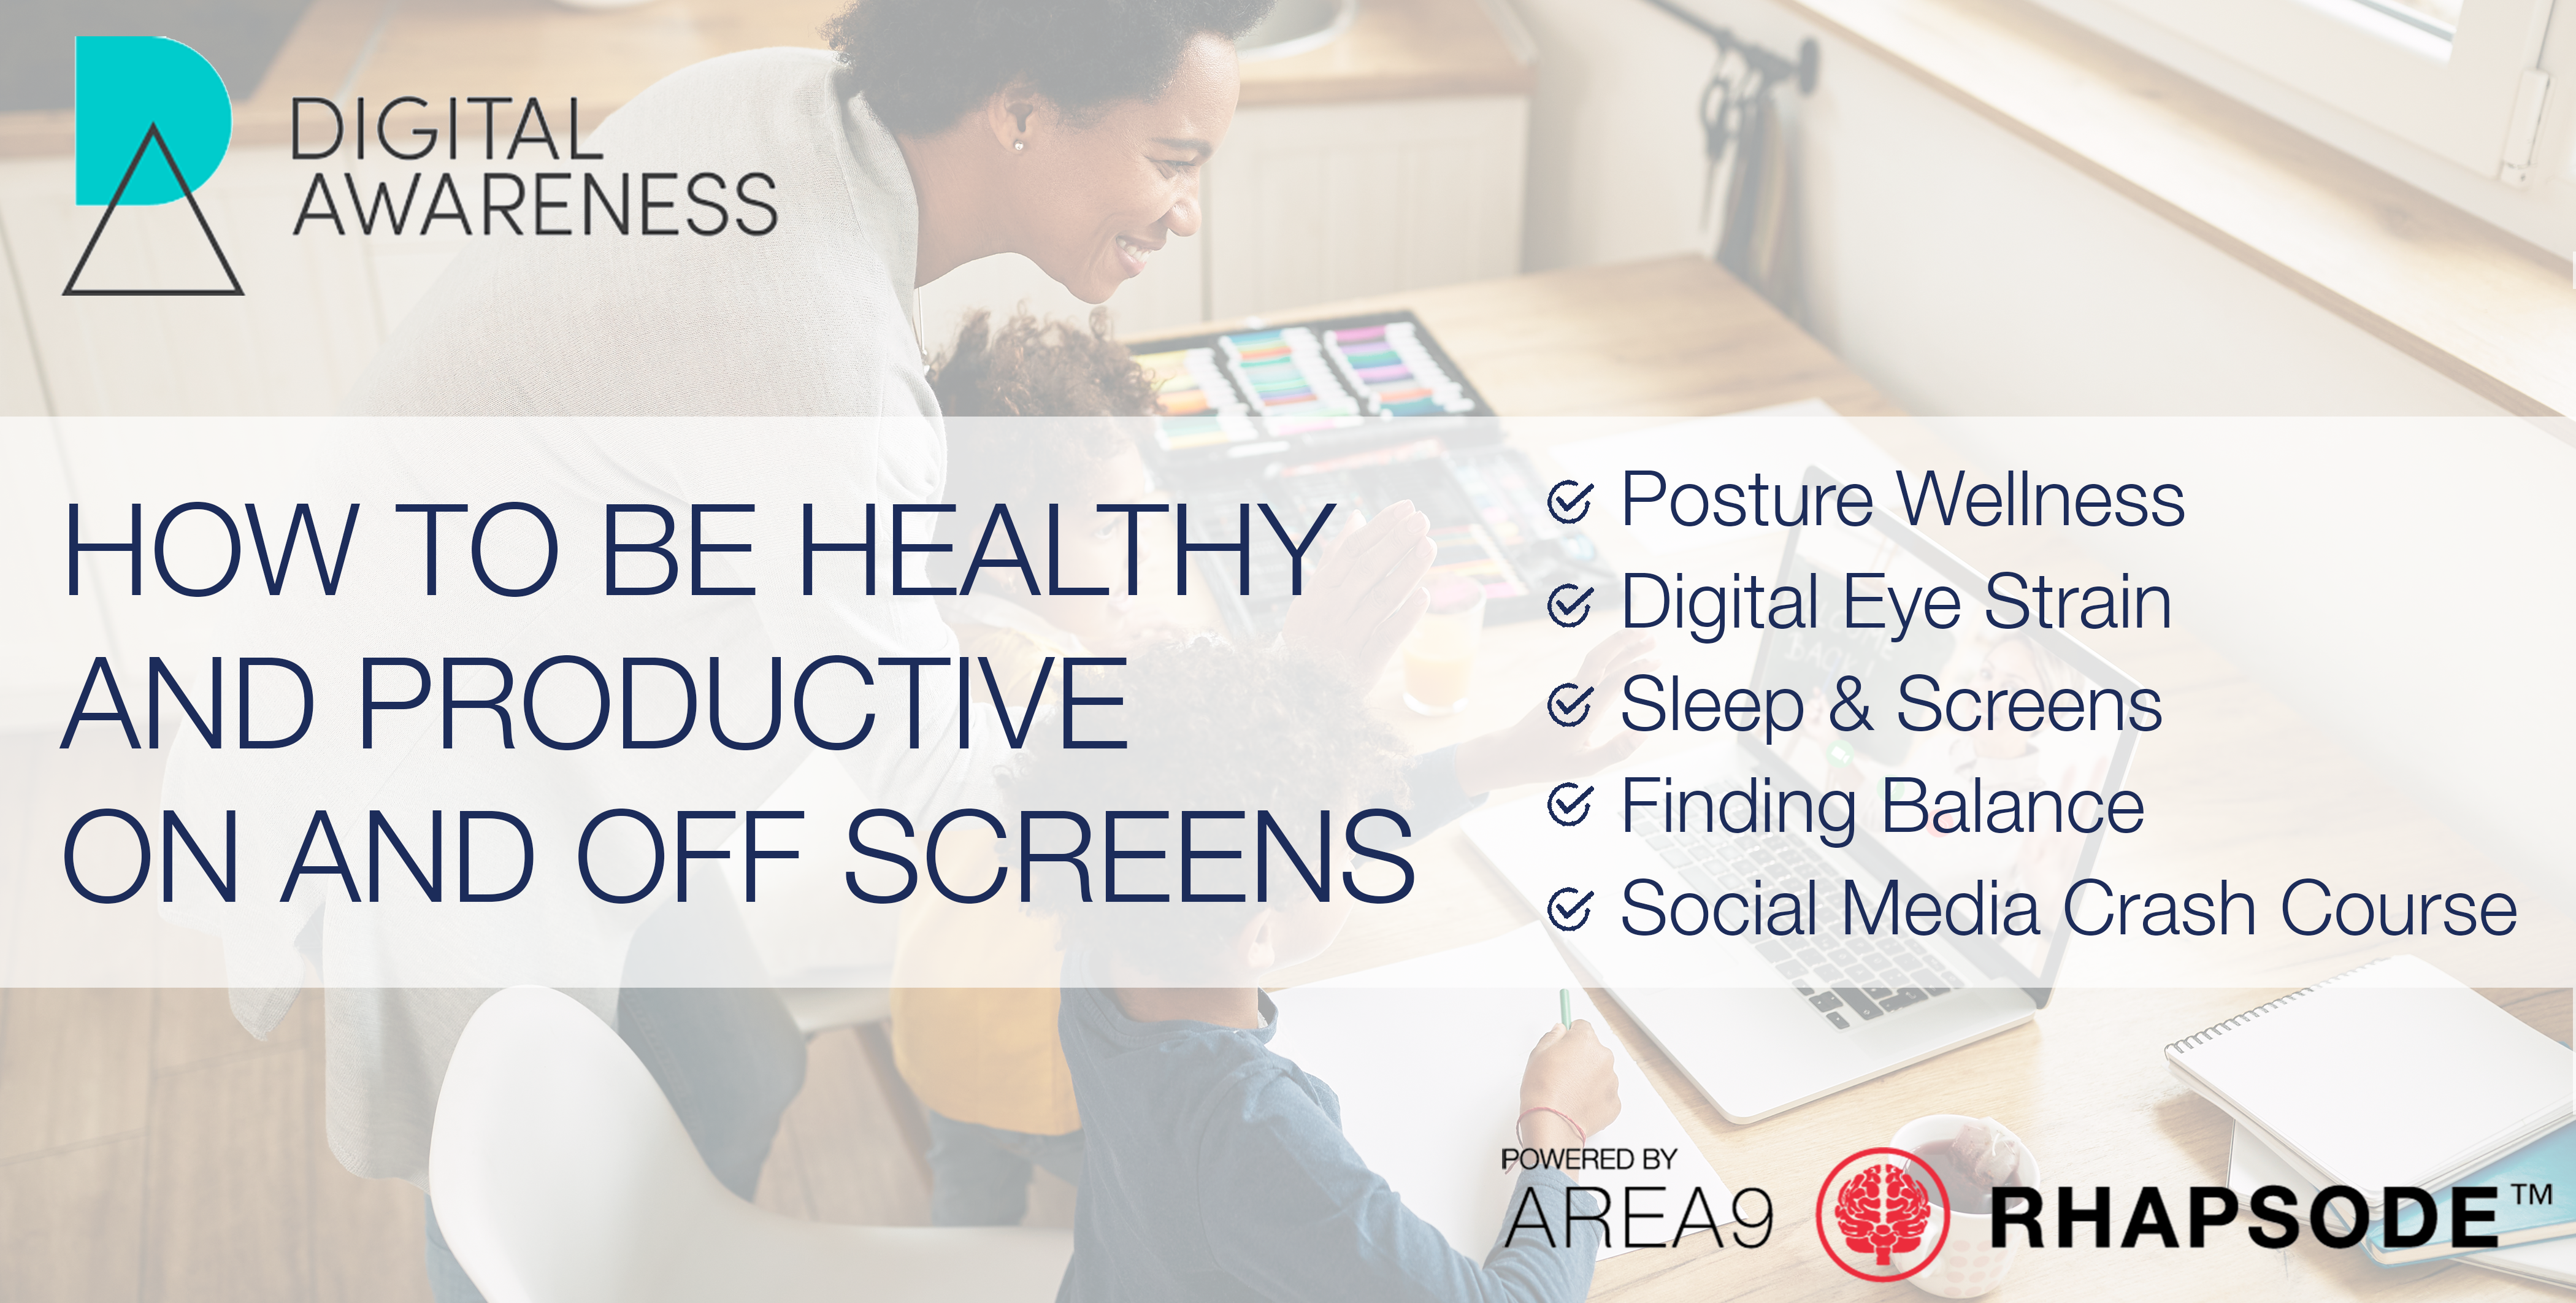 Digital Wellbeing Course How to be healthy and productive on and off screens Digital Awareness UK Area9 Lyceum BANNER